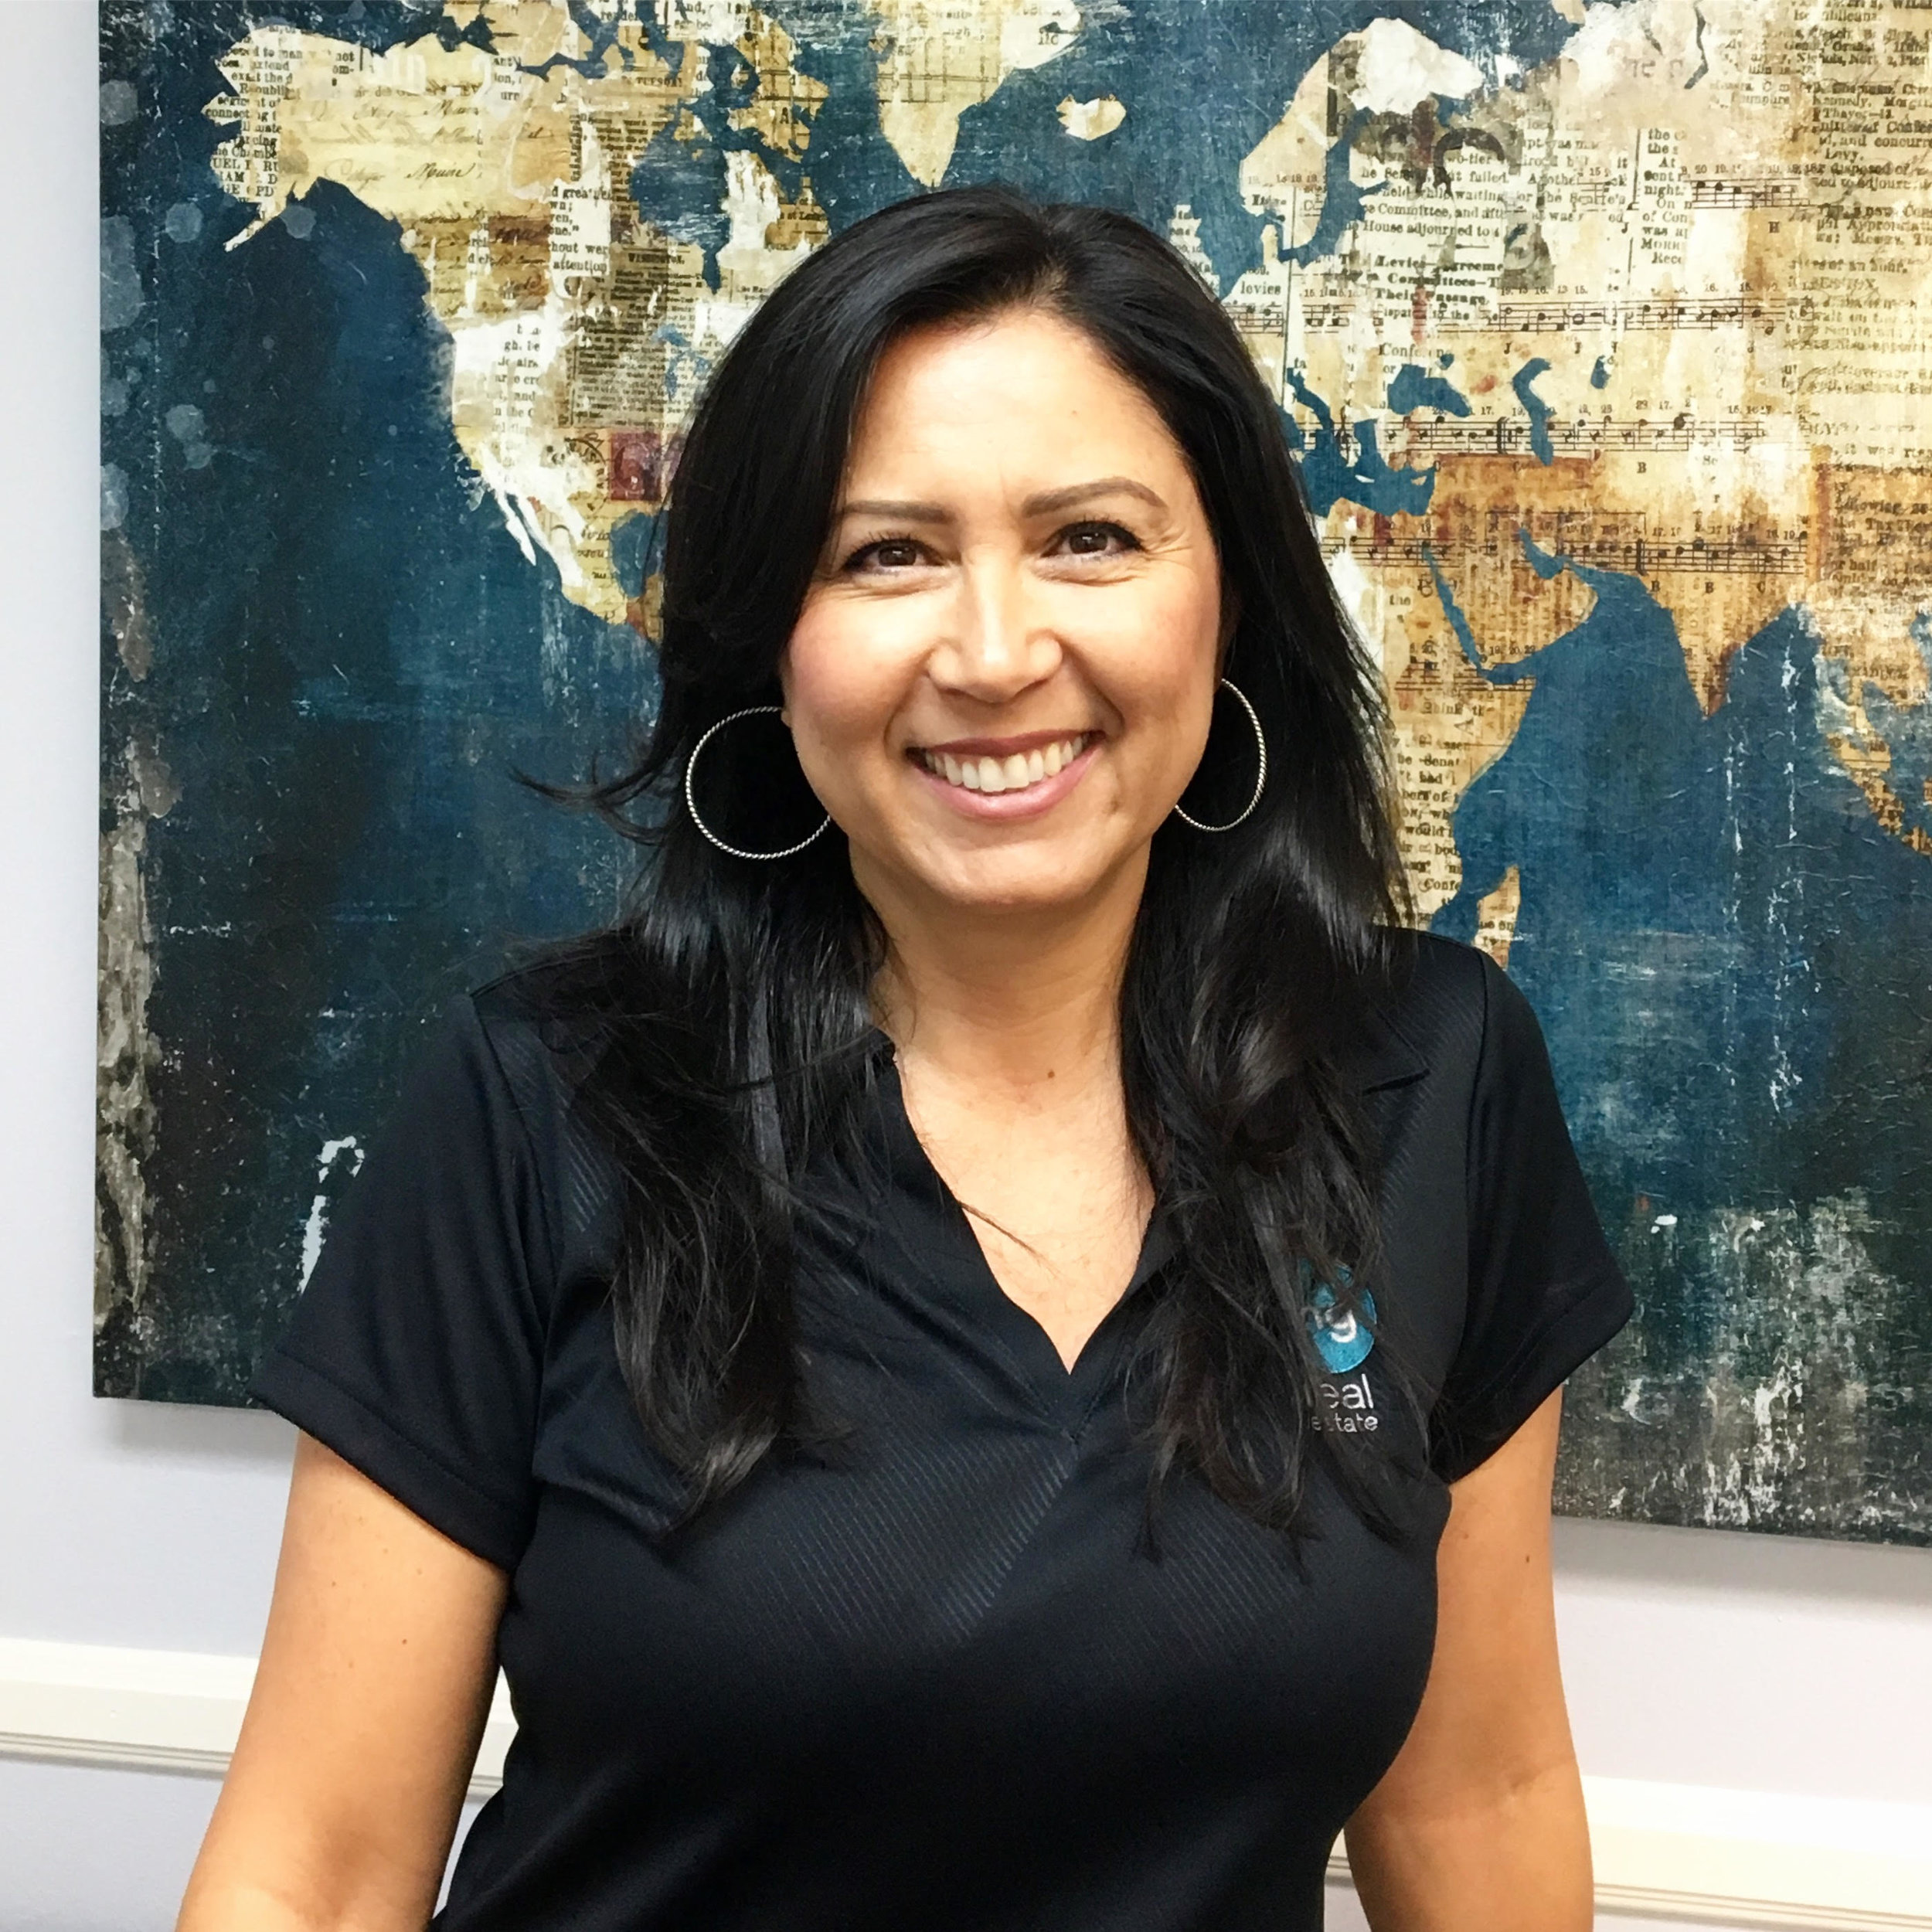 """It's a great experience to work at TNG. It's a job that I've enjoyed because I can set my own hours and I've met great people who are down to earth and have always encouraged me to build my business and be successful. At the same time, I'm able to provide my family with the extras that we normally wouldn't have."" -- Virginia Morales, TNG Agent since 2006."